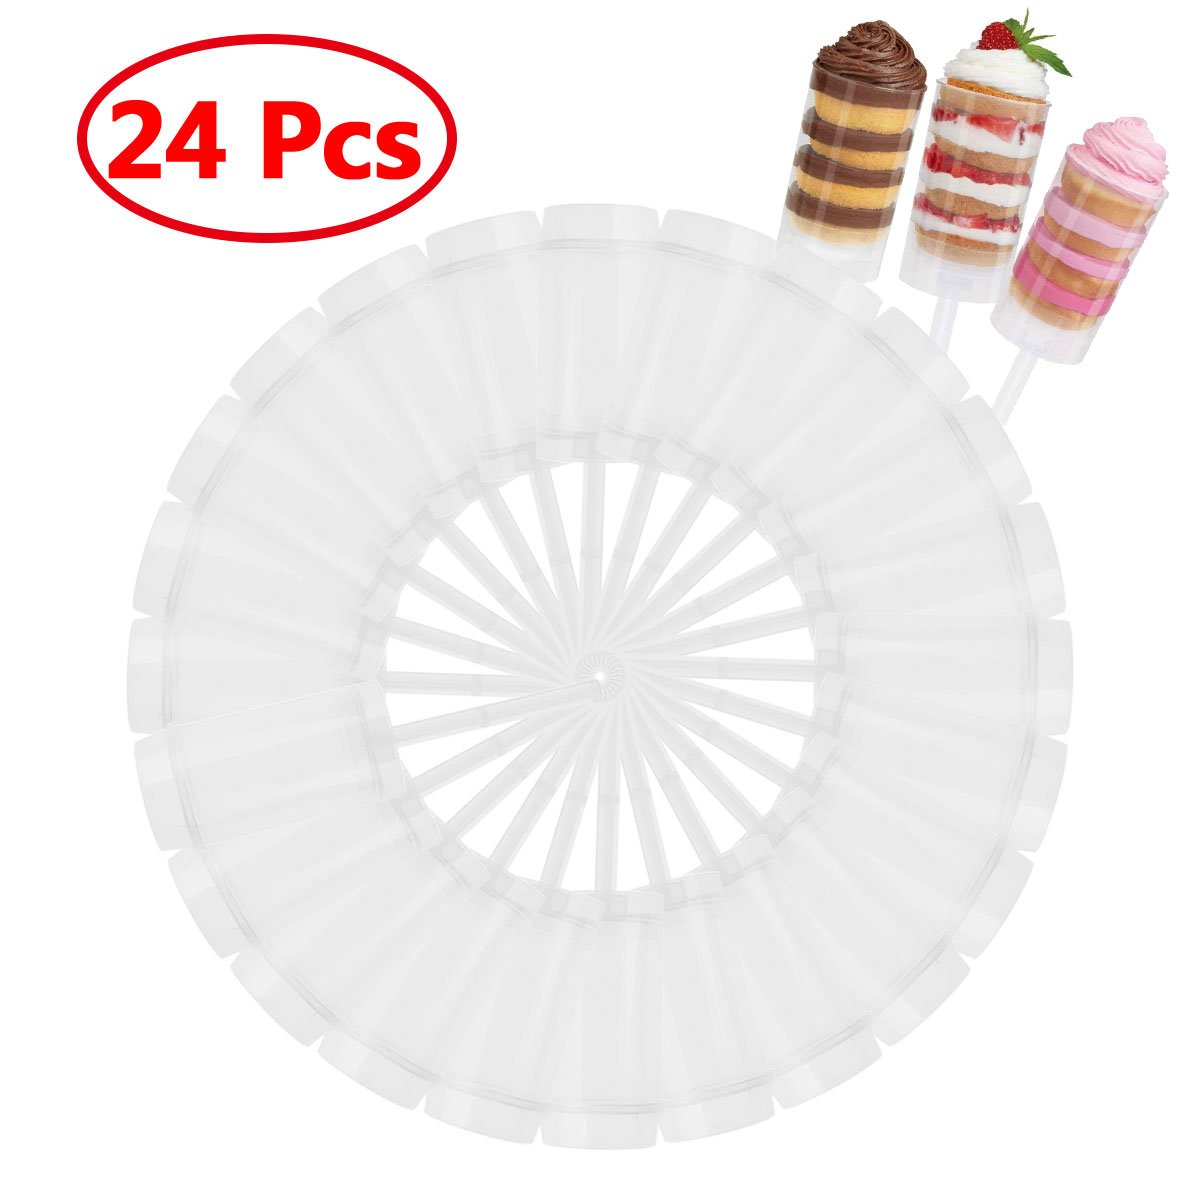 Round Push-Up Pop Cake Shooter Containers with Lids Base & Sticks for Cupcakes Cake Ice Cream Mold 24pcs One Size